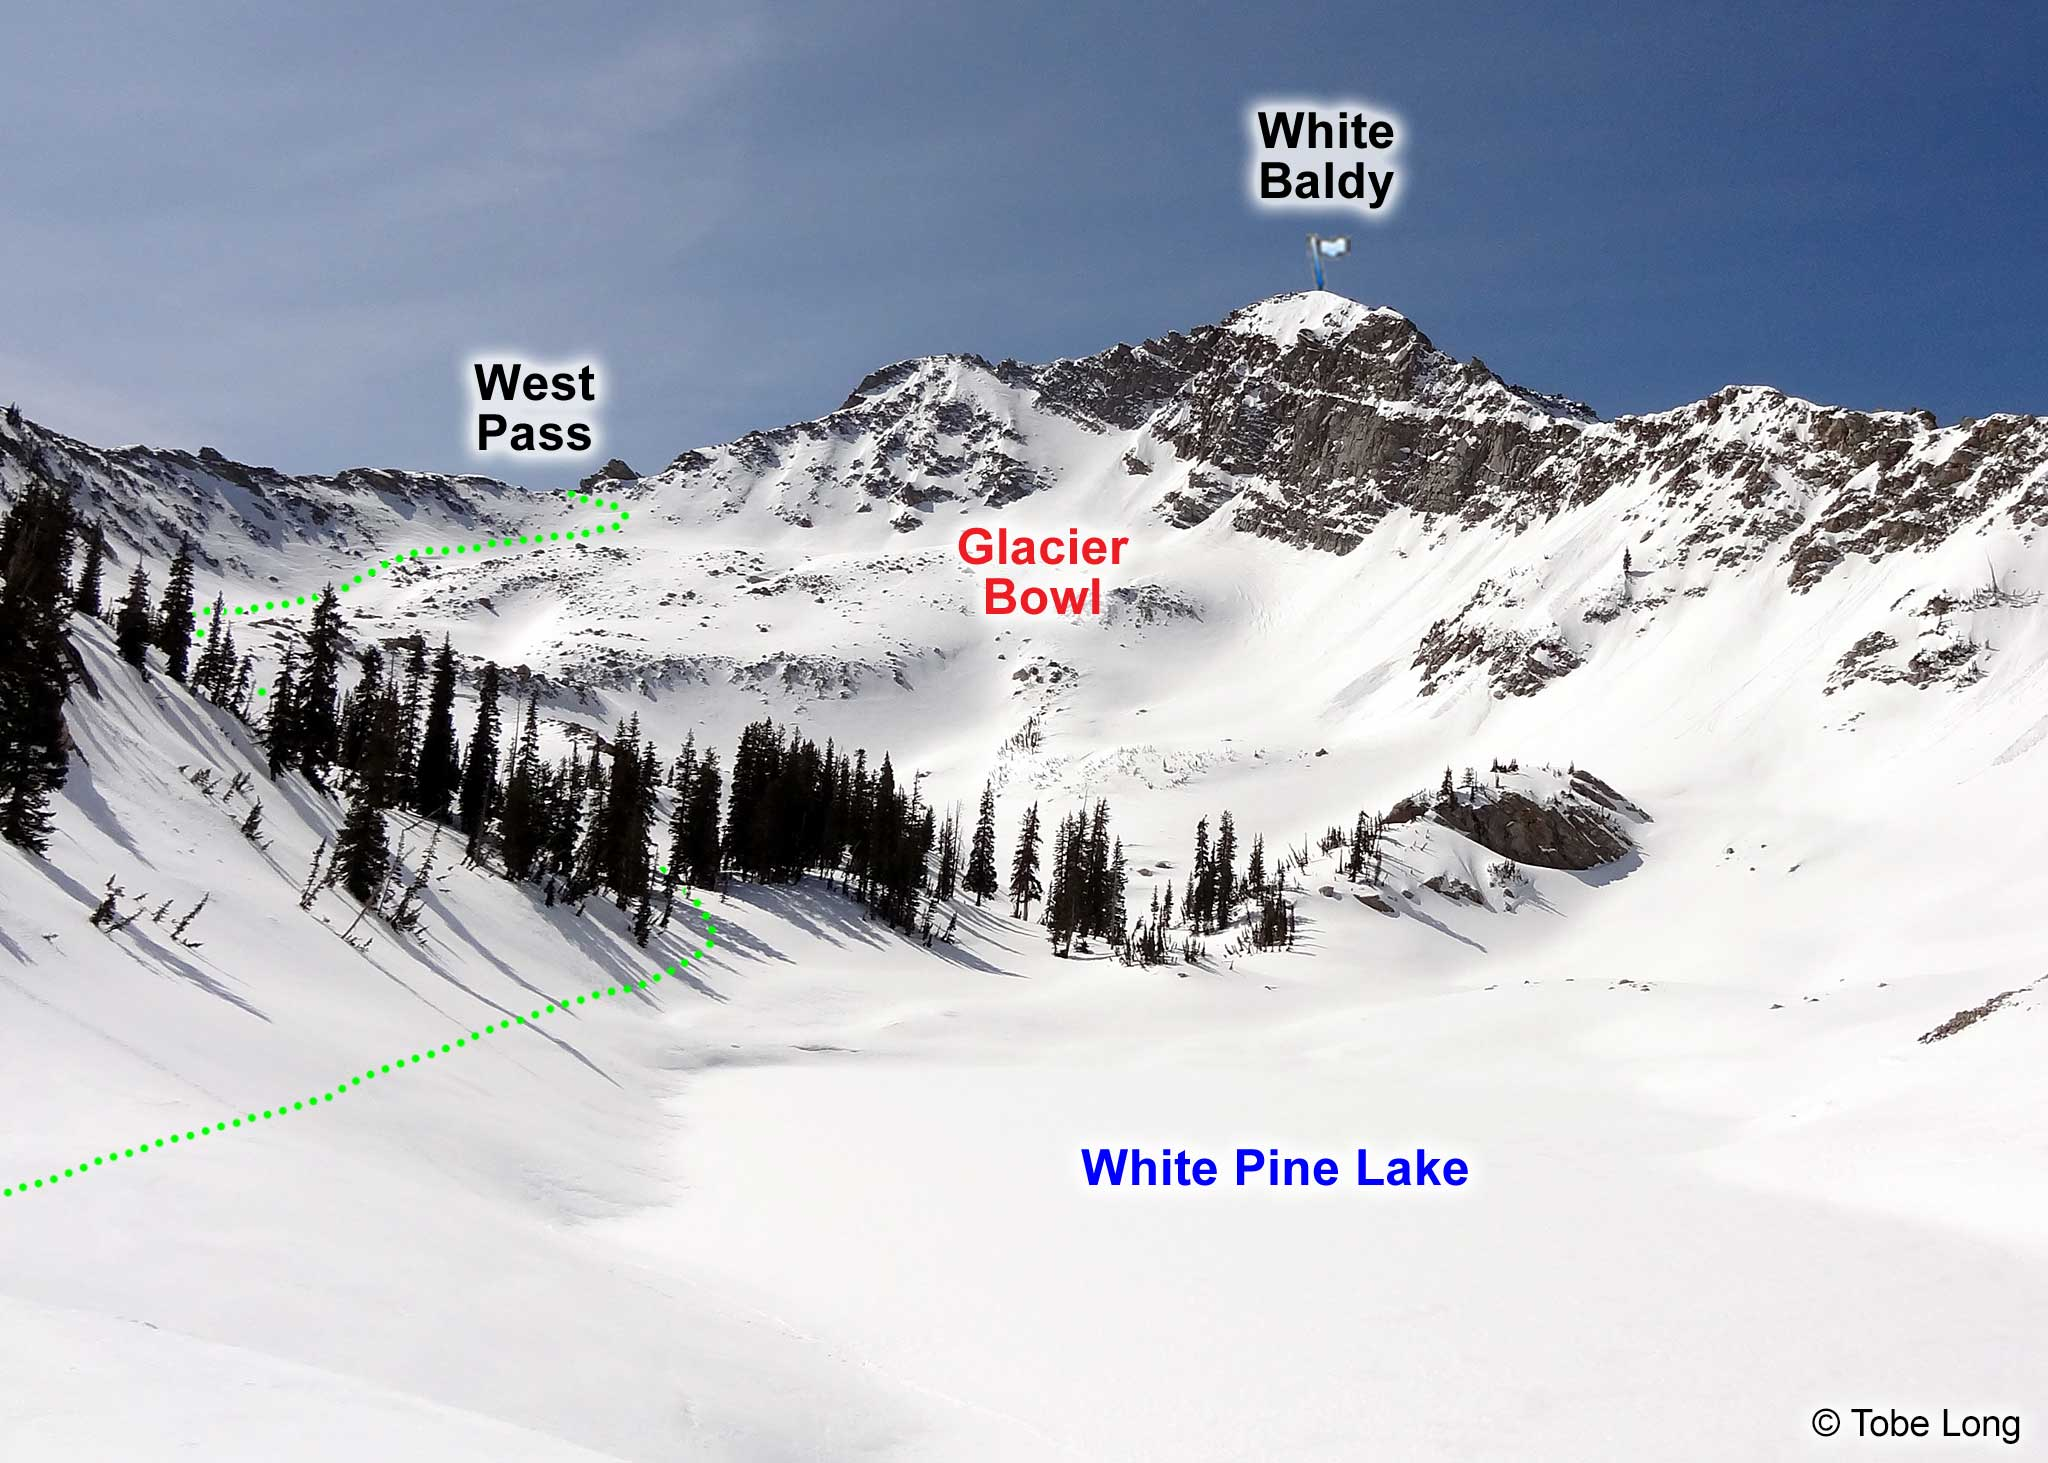 wbskiing guide